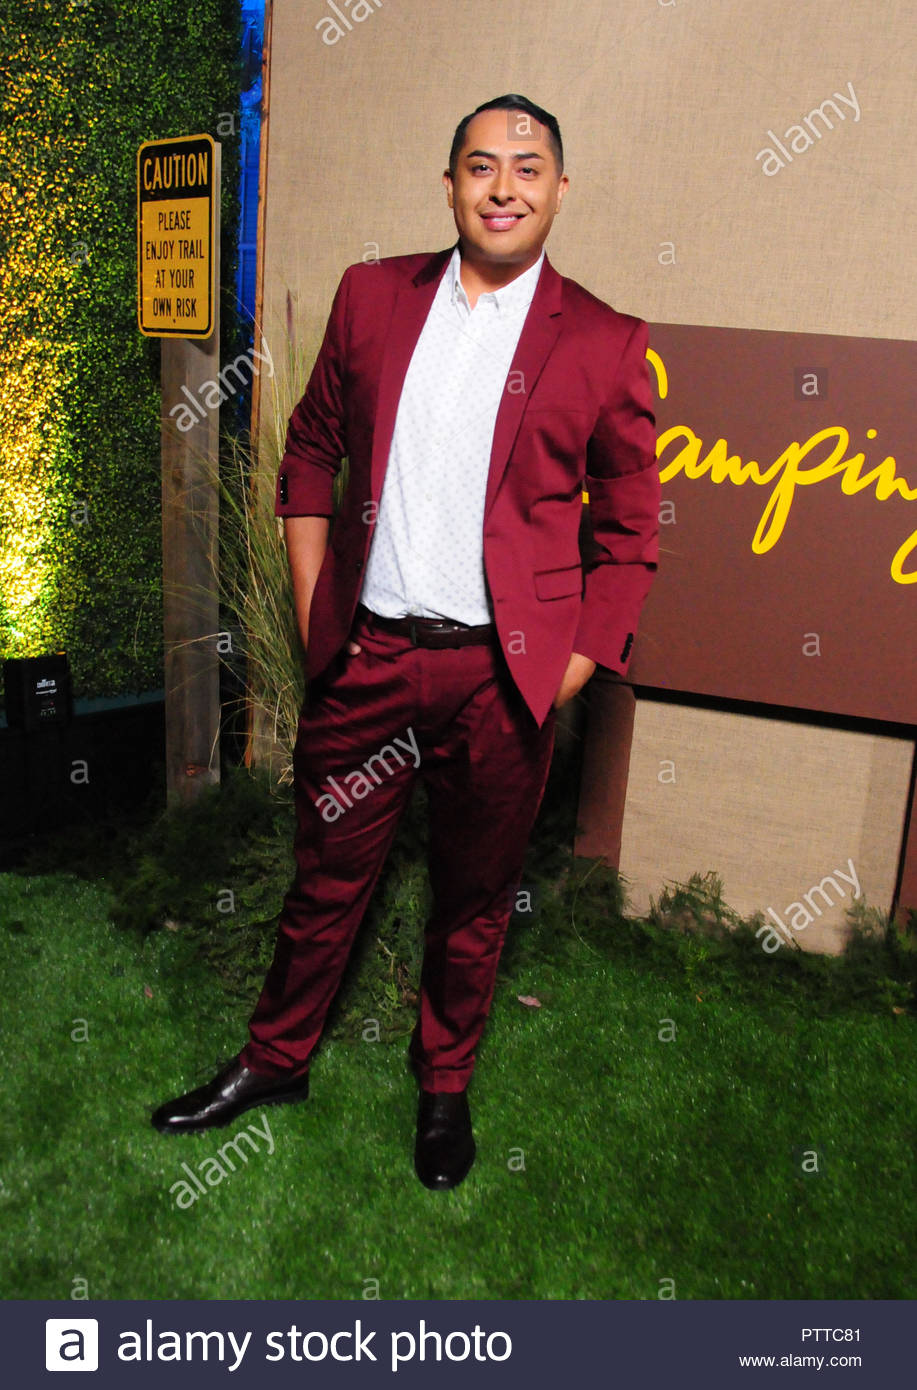 los-angeles-usa-10th-oct-2018-actor-lian-castillo-attends-the-los-angeles-premiere-of-hbo-series-camping-on-october-10-2018-at-paramount-studios-in-los-angeles-california-photo-by-barry-kingalamy-live-news-PTTC81.jpg